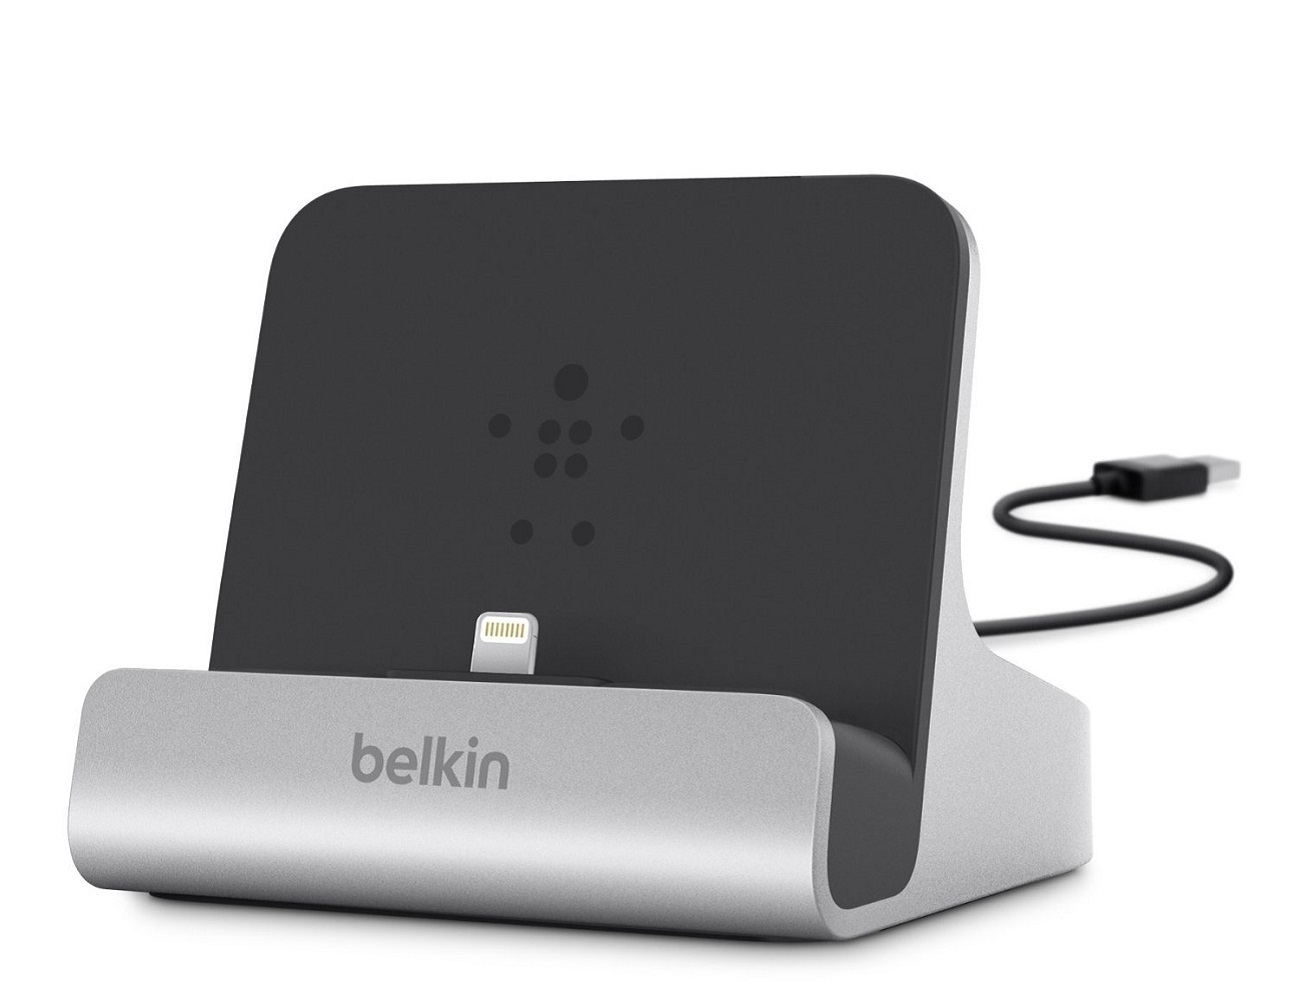 Belkin Dock For iPhone SE/5s